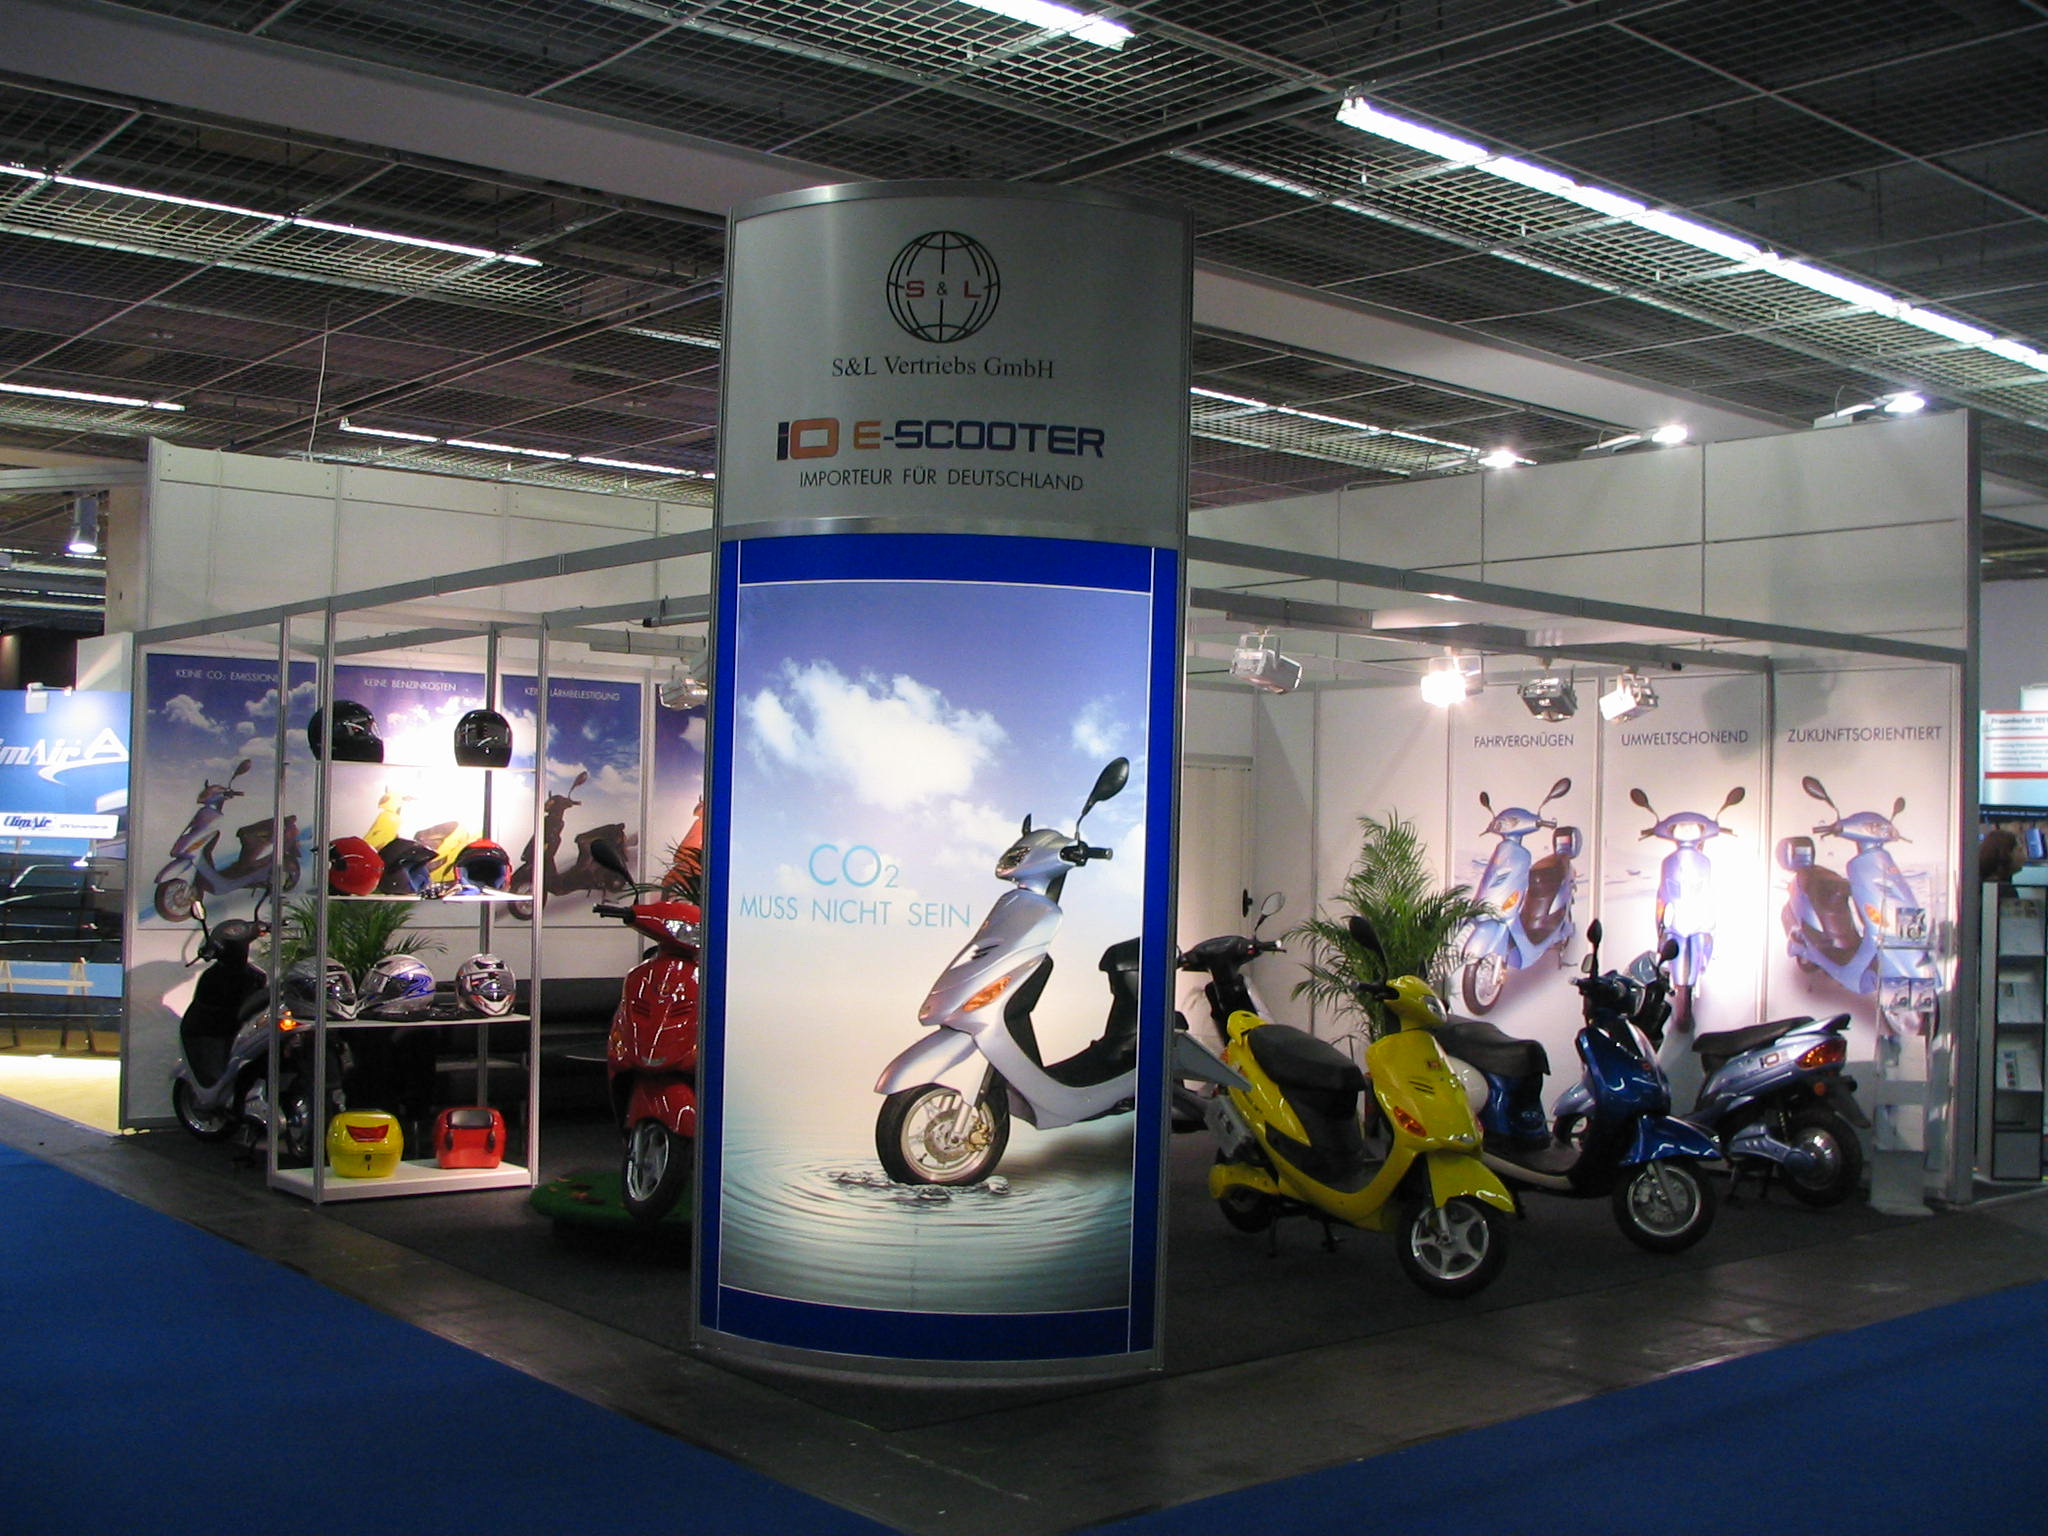 IO Scooter Germany